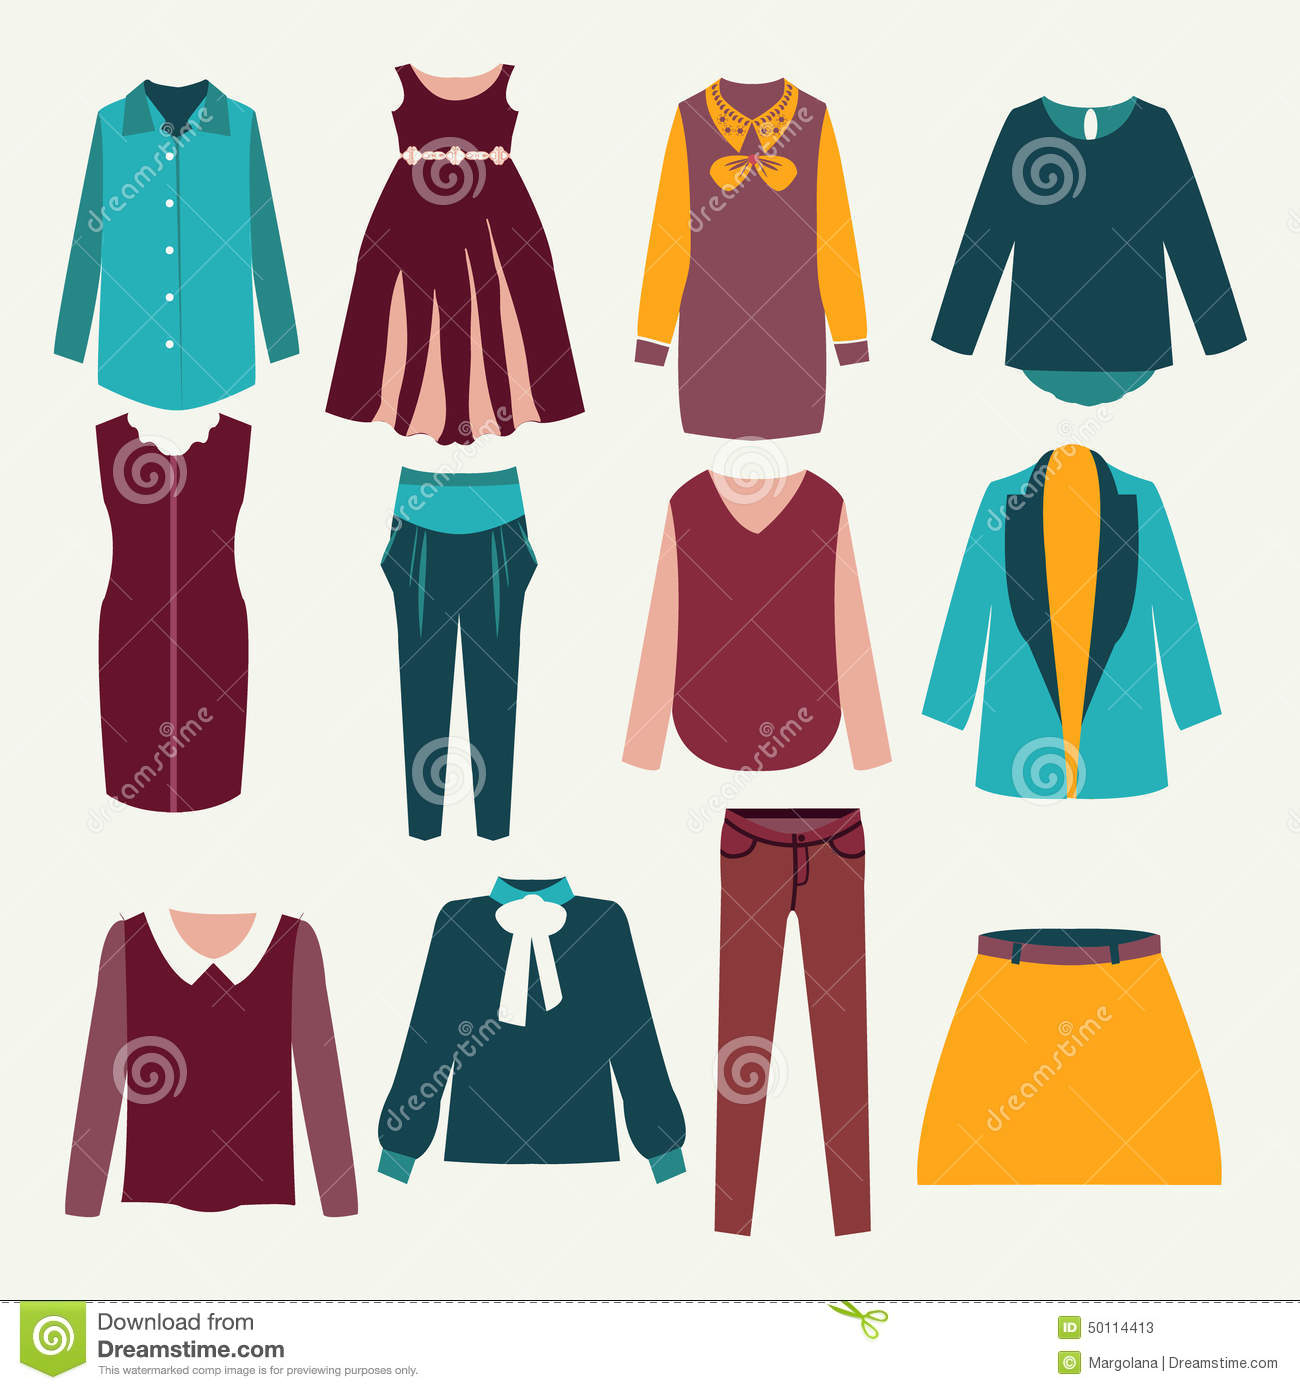 Clothing Design Illustrator clothing Illustration